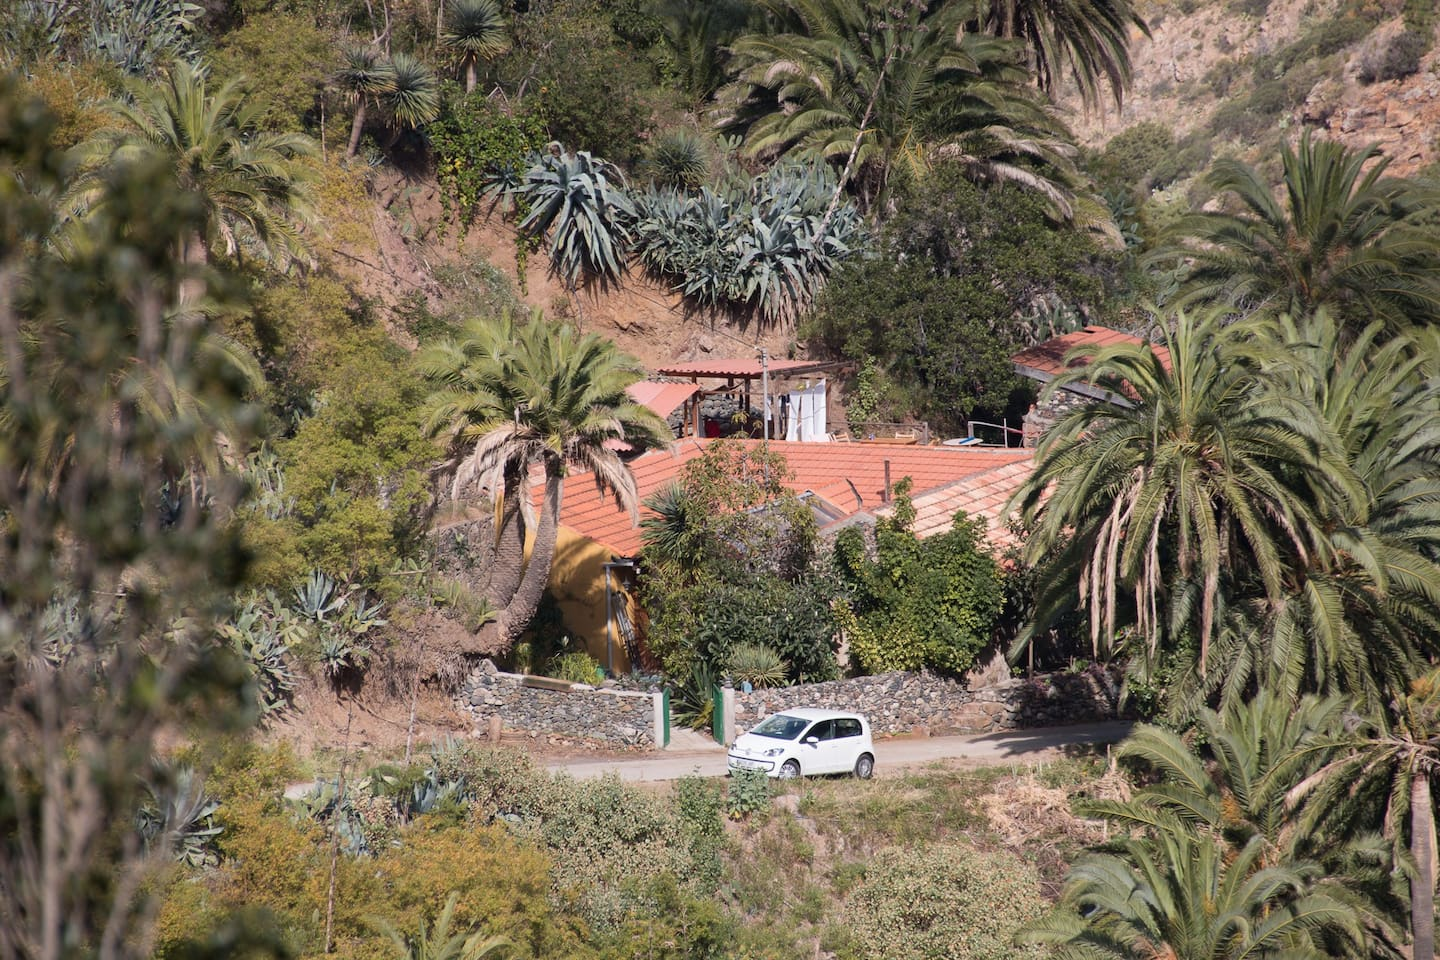 This is the whole country house complex (finca). The cottage is hidden behind the huge palm to the right.